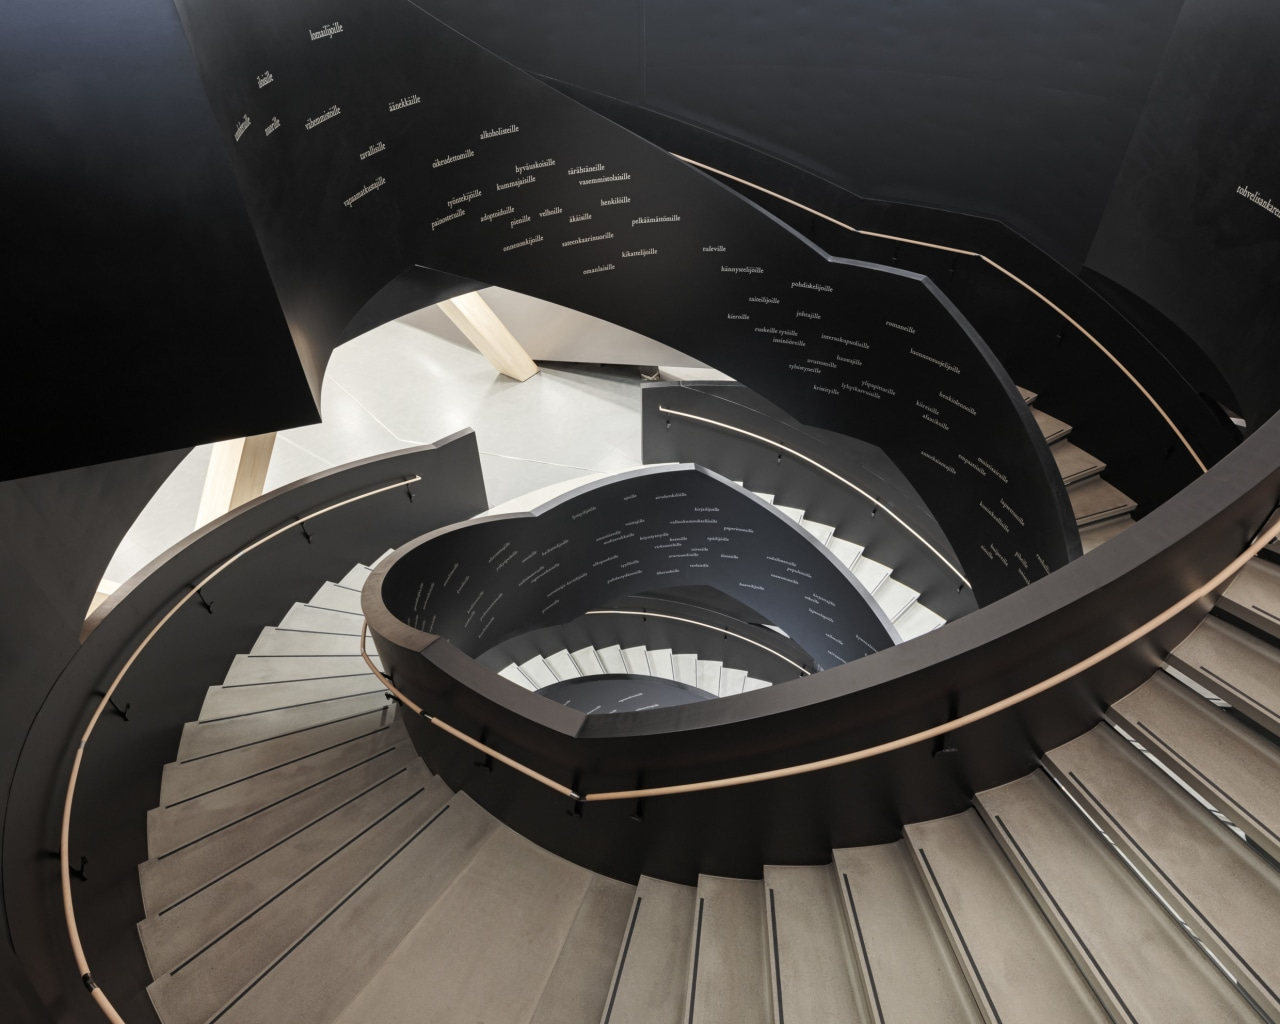 For the Helsinki library, the complex curved geometry architecture, automotive design, font, material property, stairs, black, gray